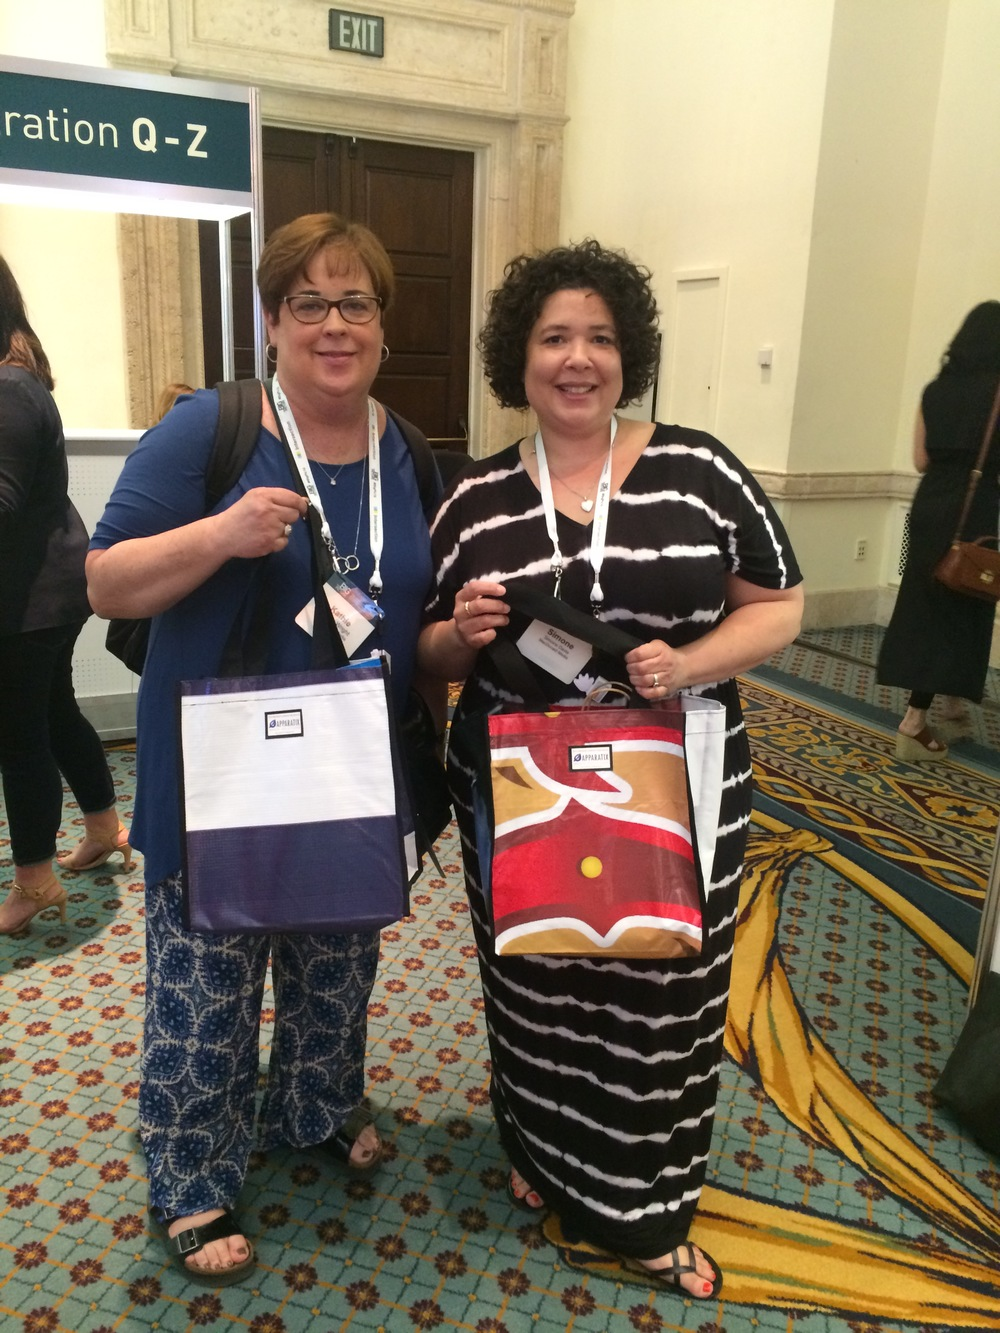 Attendees with their Relan bags